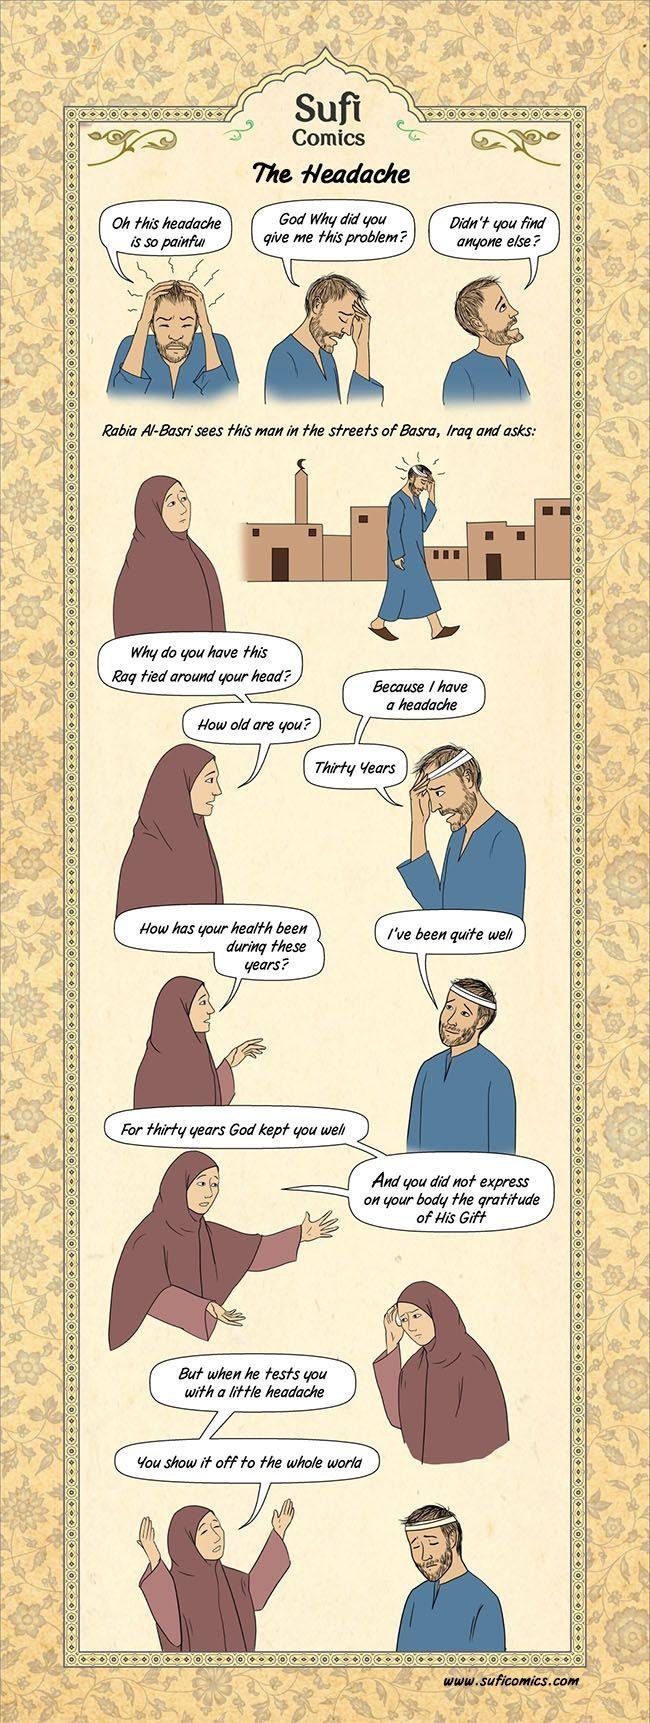 The Headache - Sufi Comics